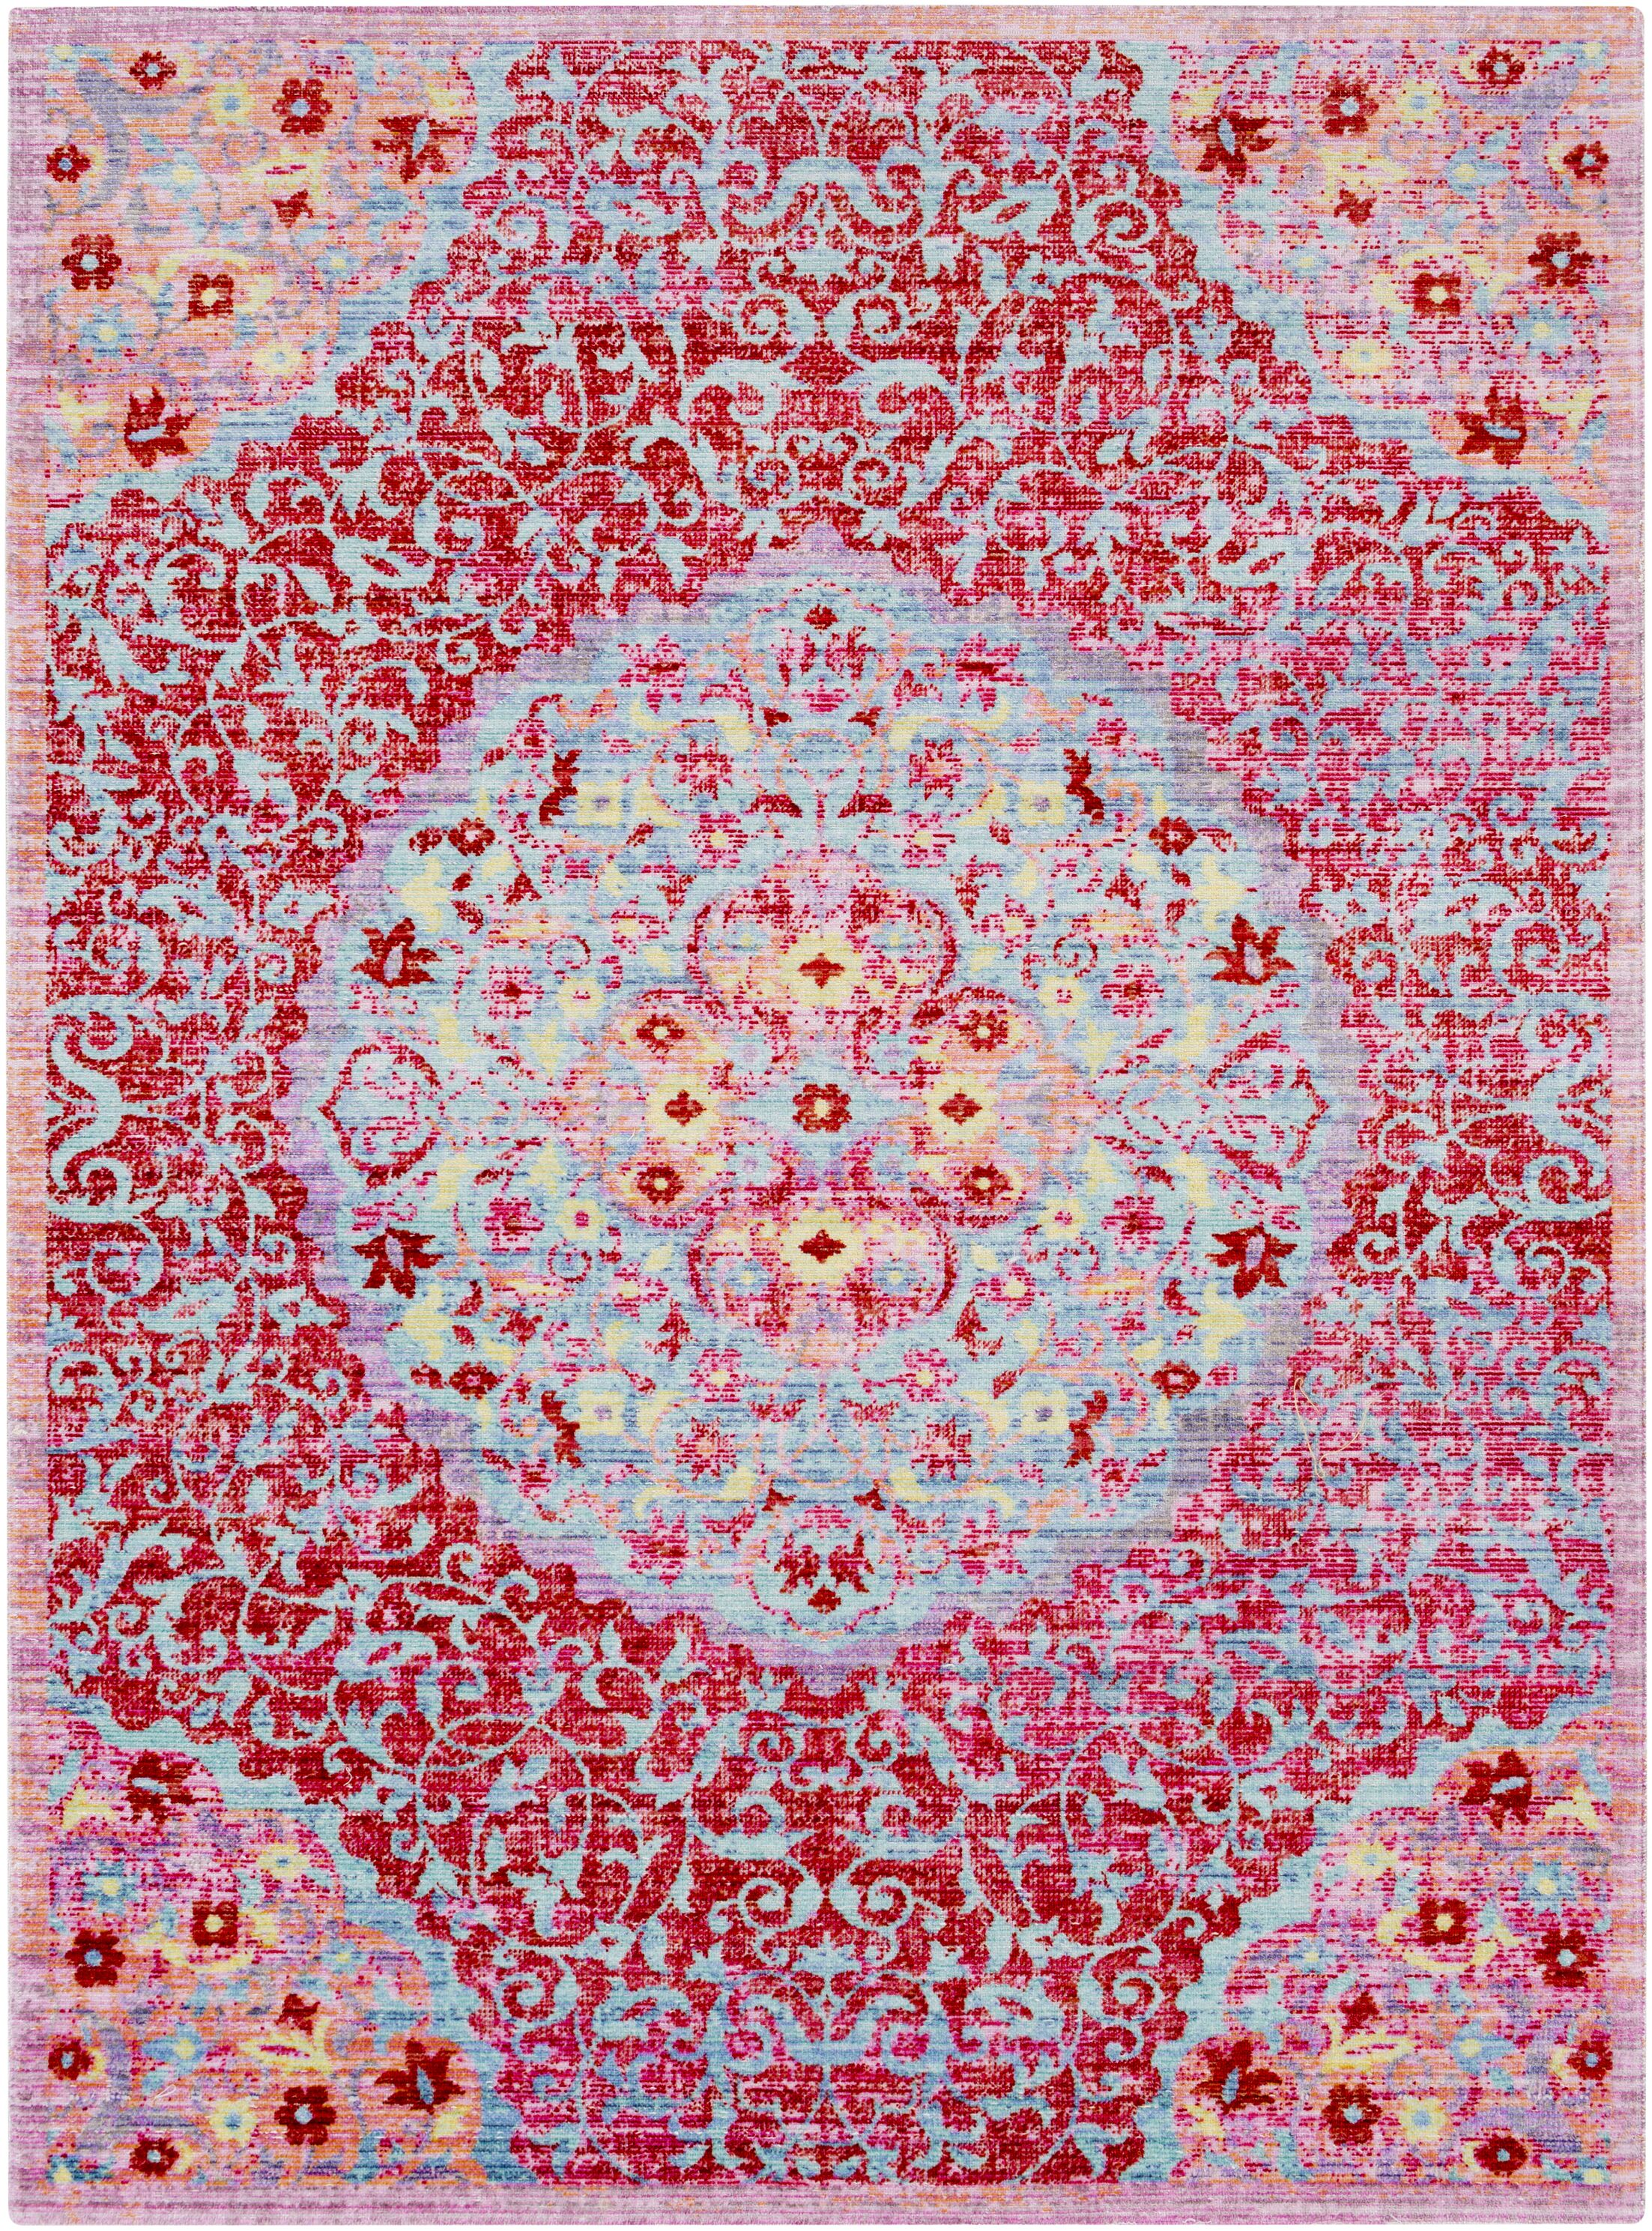 Lyngby-Taarbæk Classic Red Area Rug Rug Size: Rectangle 9'3